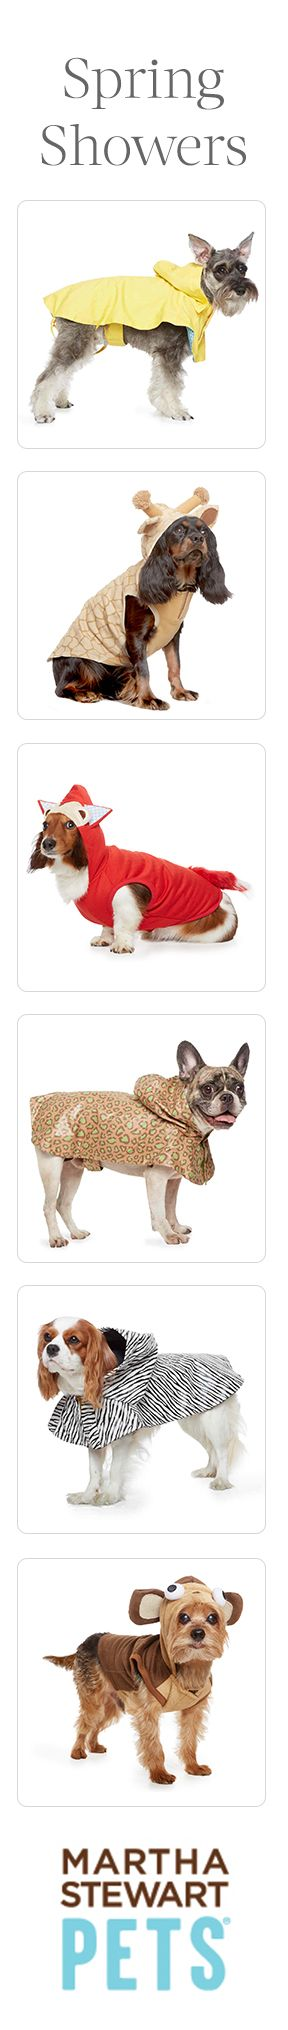 Avoid April Showers with spring apparel that protects your pet. Spot the cavalier